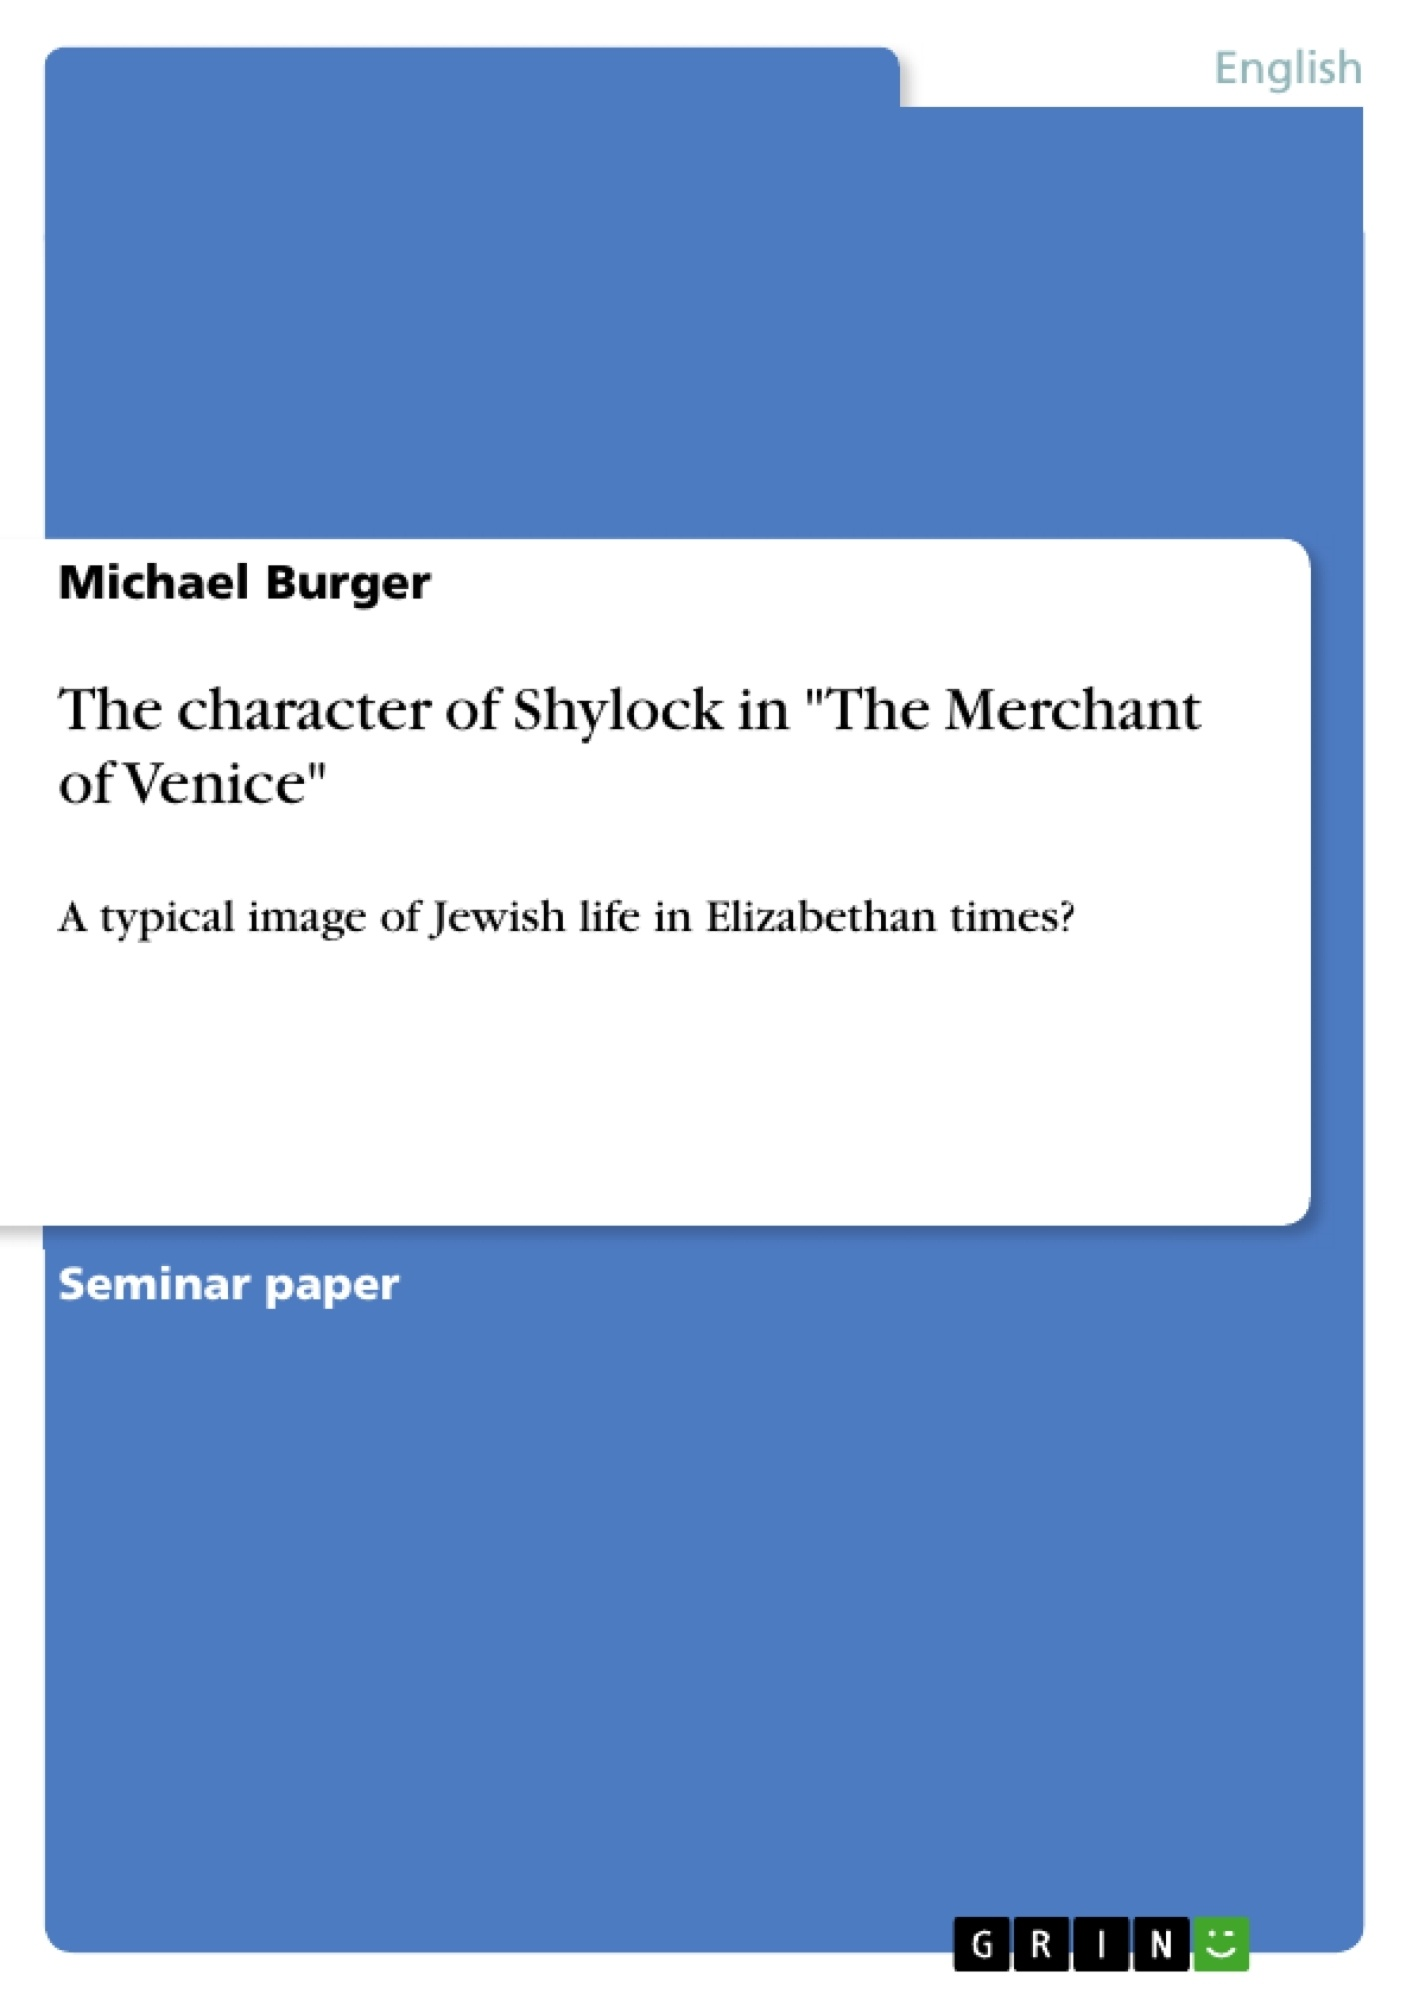 is shylock a victim or a villain essay essays on death death essay  the character of shylock in the merchant of venice publish upload your own papers earn money